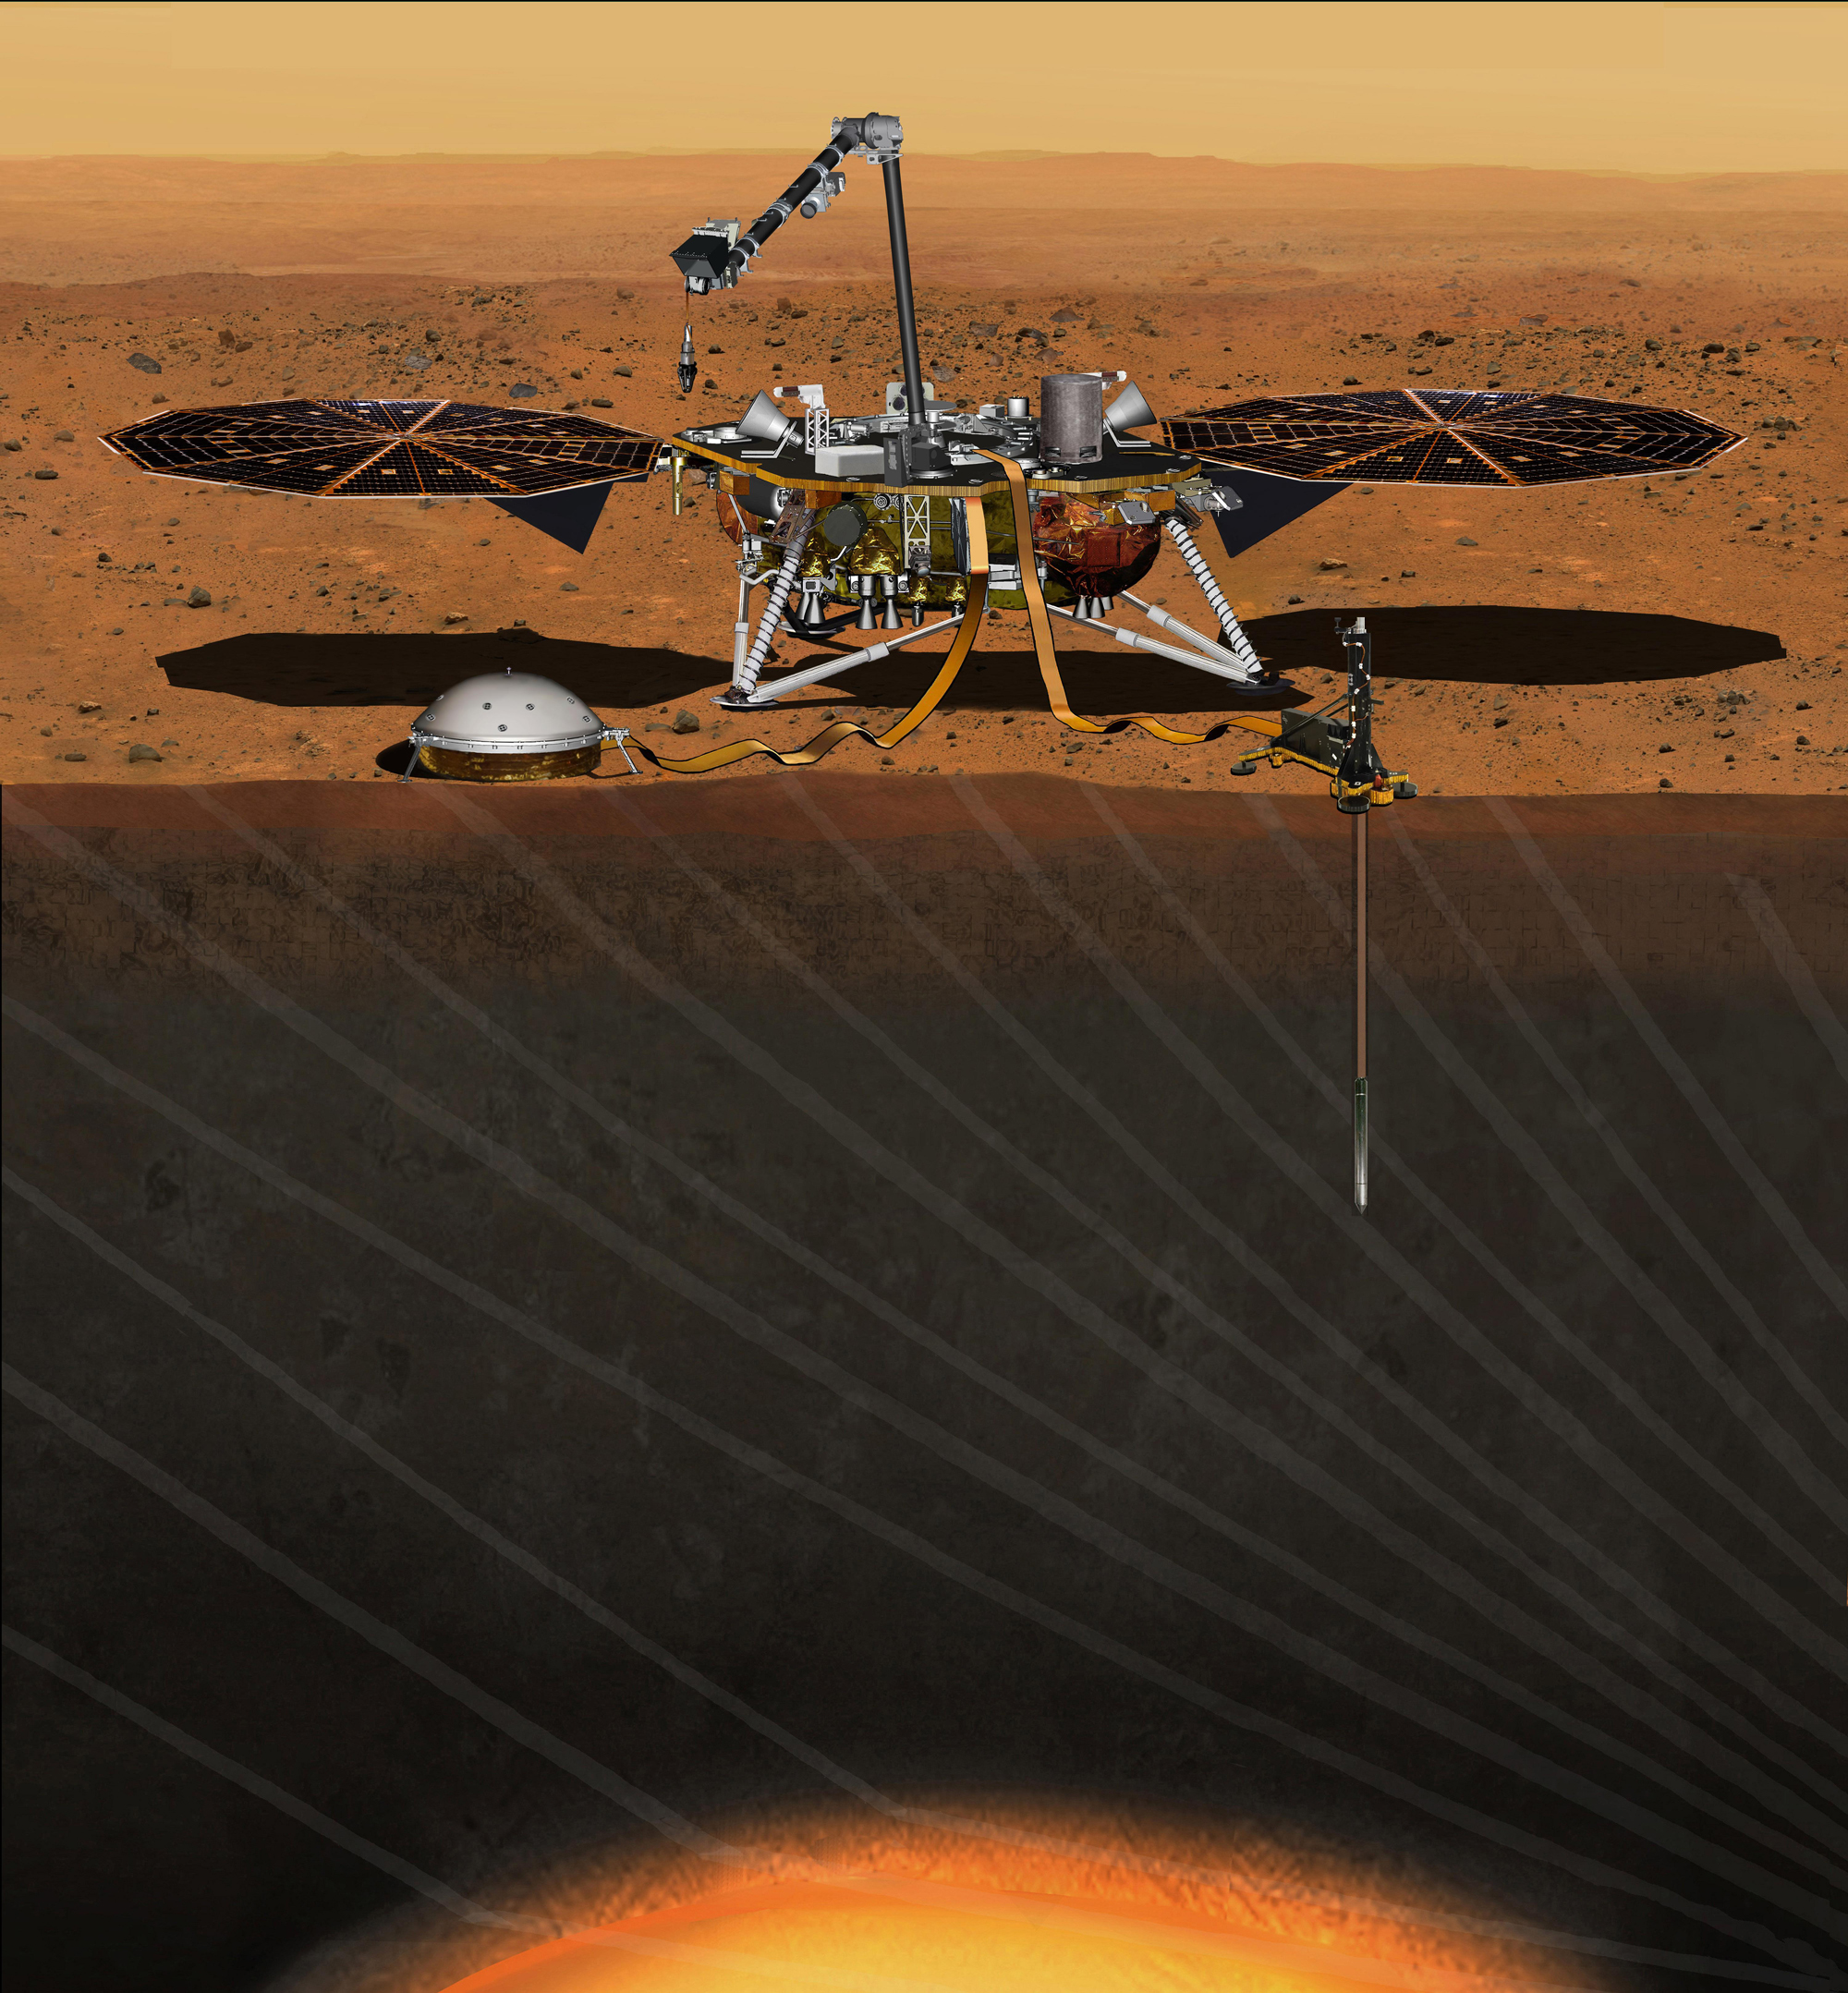 NASA Aims to Launch Troubled Mars Lander in May 2018